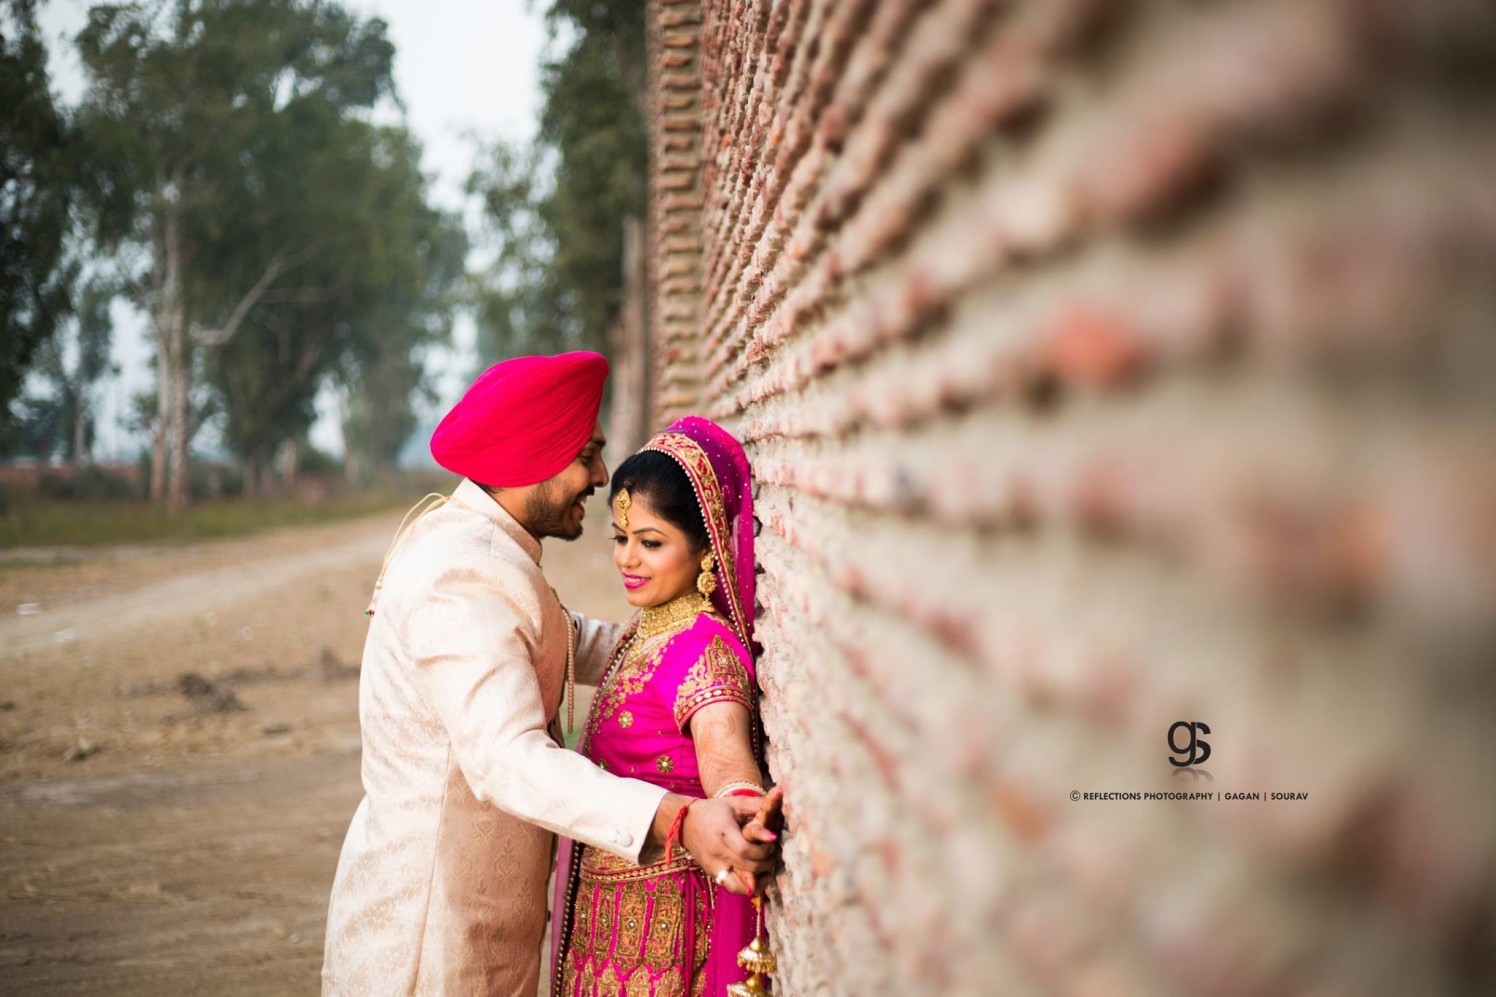 With you, all my joys begin! by Reflections Photography Wedding-photography | Weddings Photos & Ideas